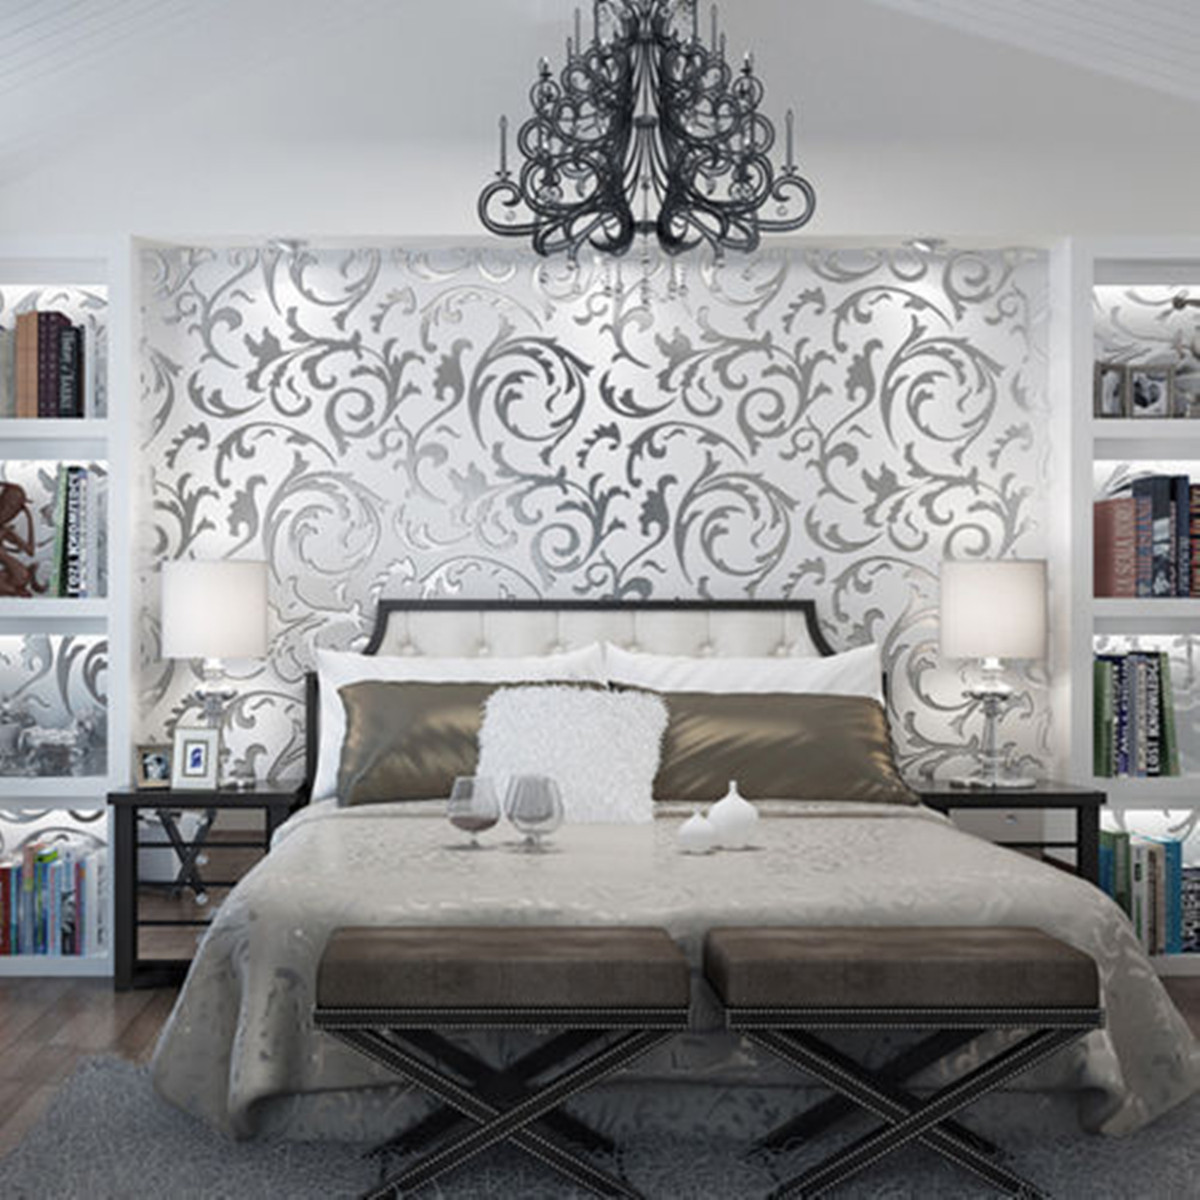 3D Silver Victorian Wall Sticker Damask Embossed Rolls Wallpaper Feature Living Room Background Decor